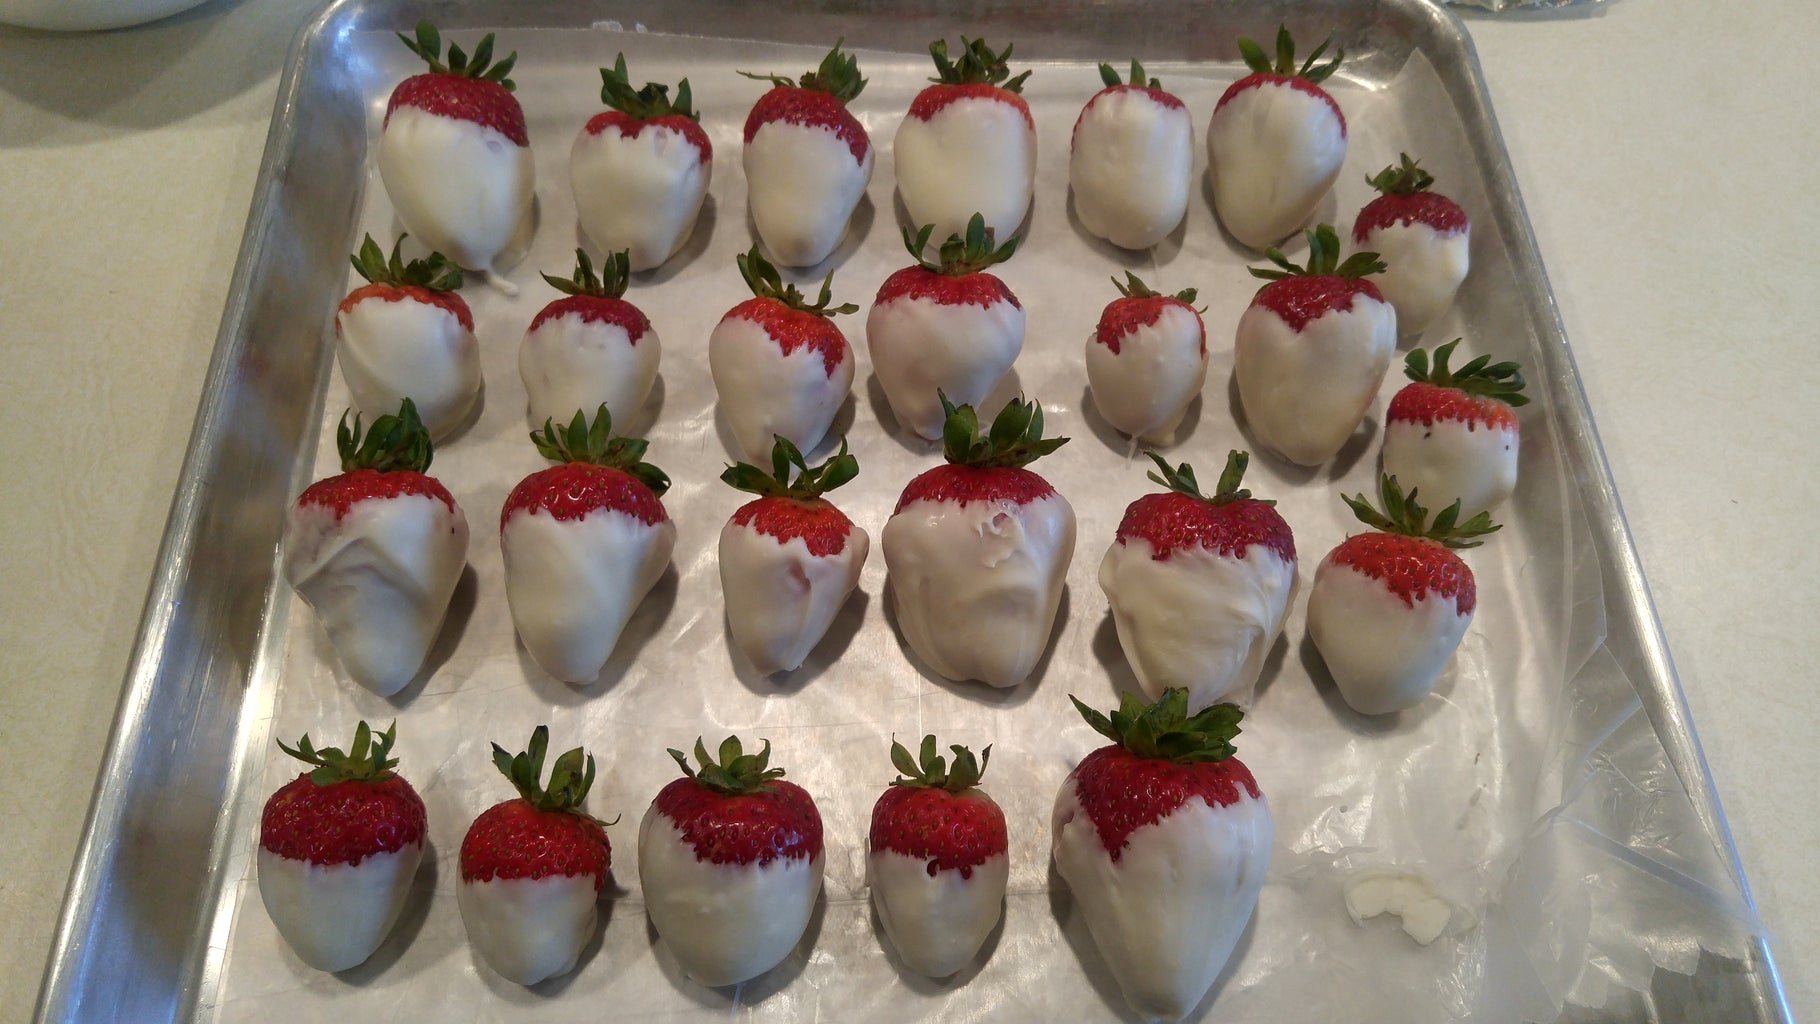 Dip the Strawberries in the White Chocolate